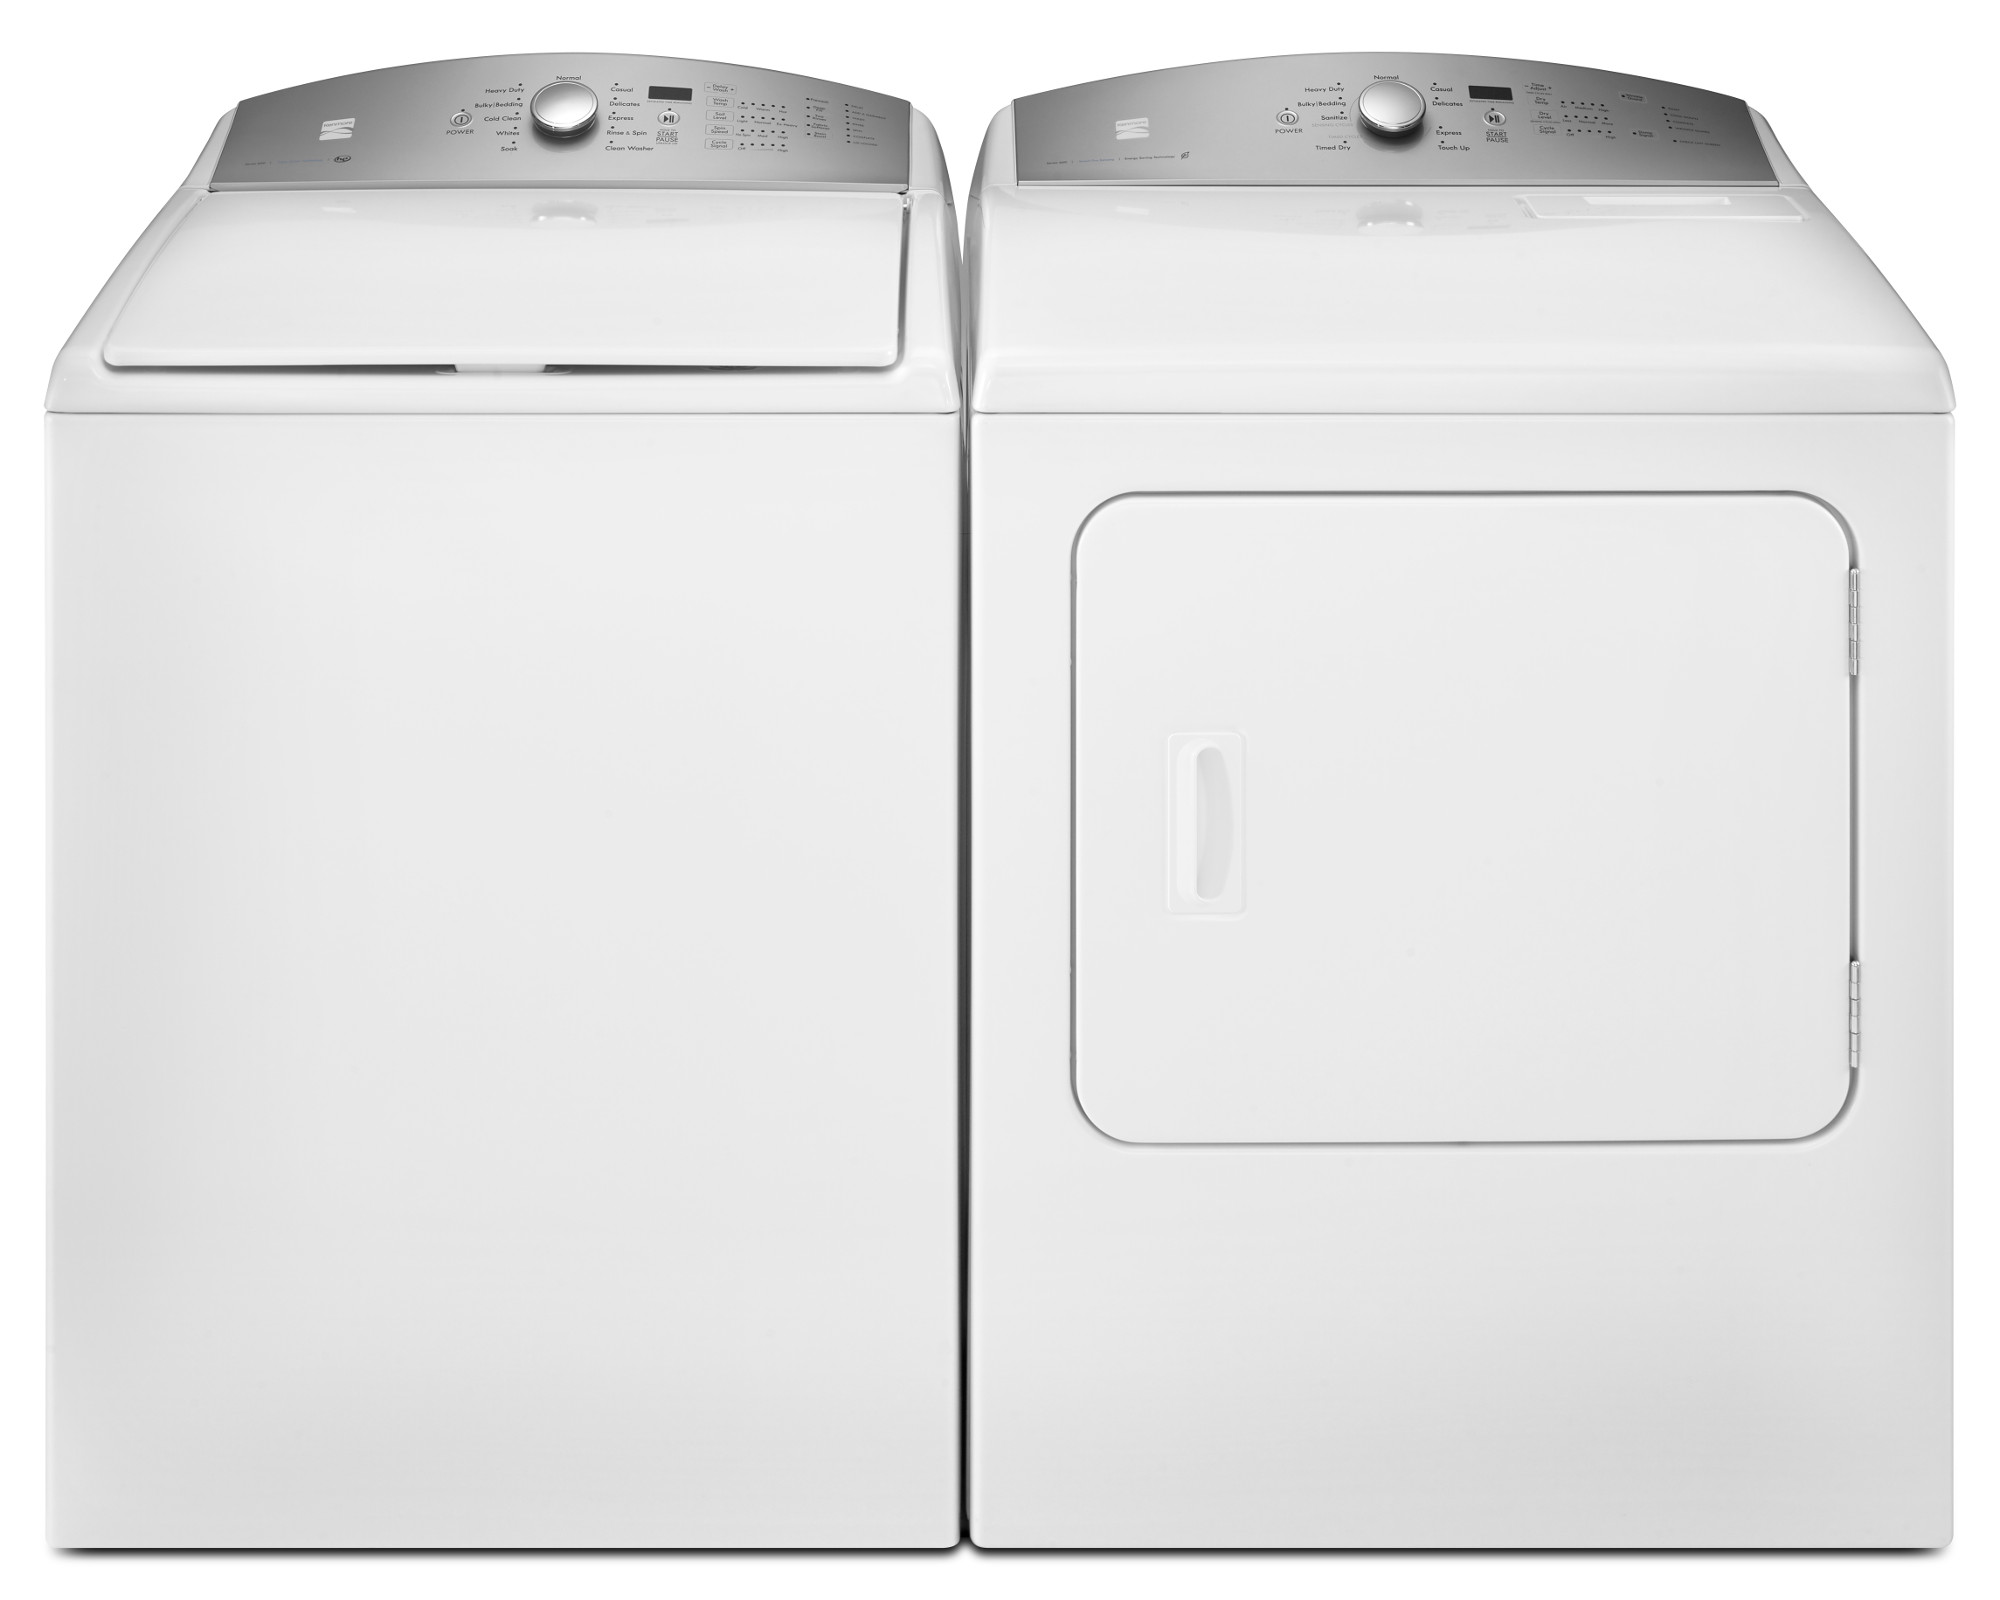 Kenmore 26132 4.8 cu. ft. Top Load Washer - White